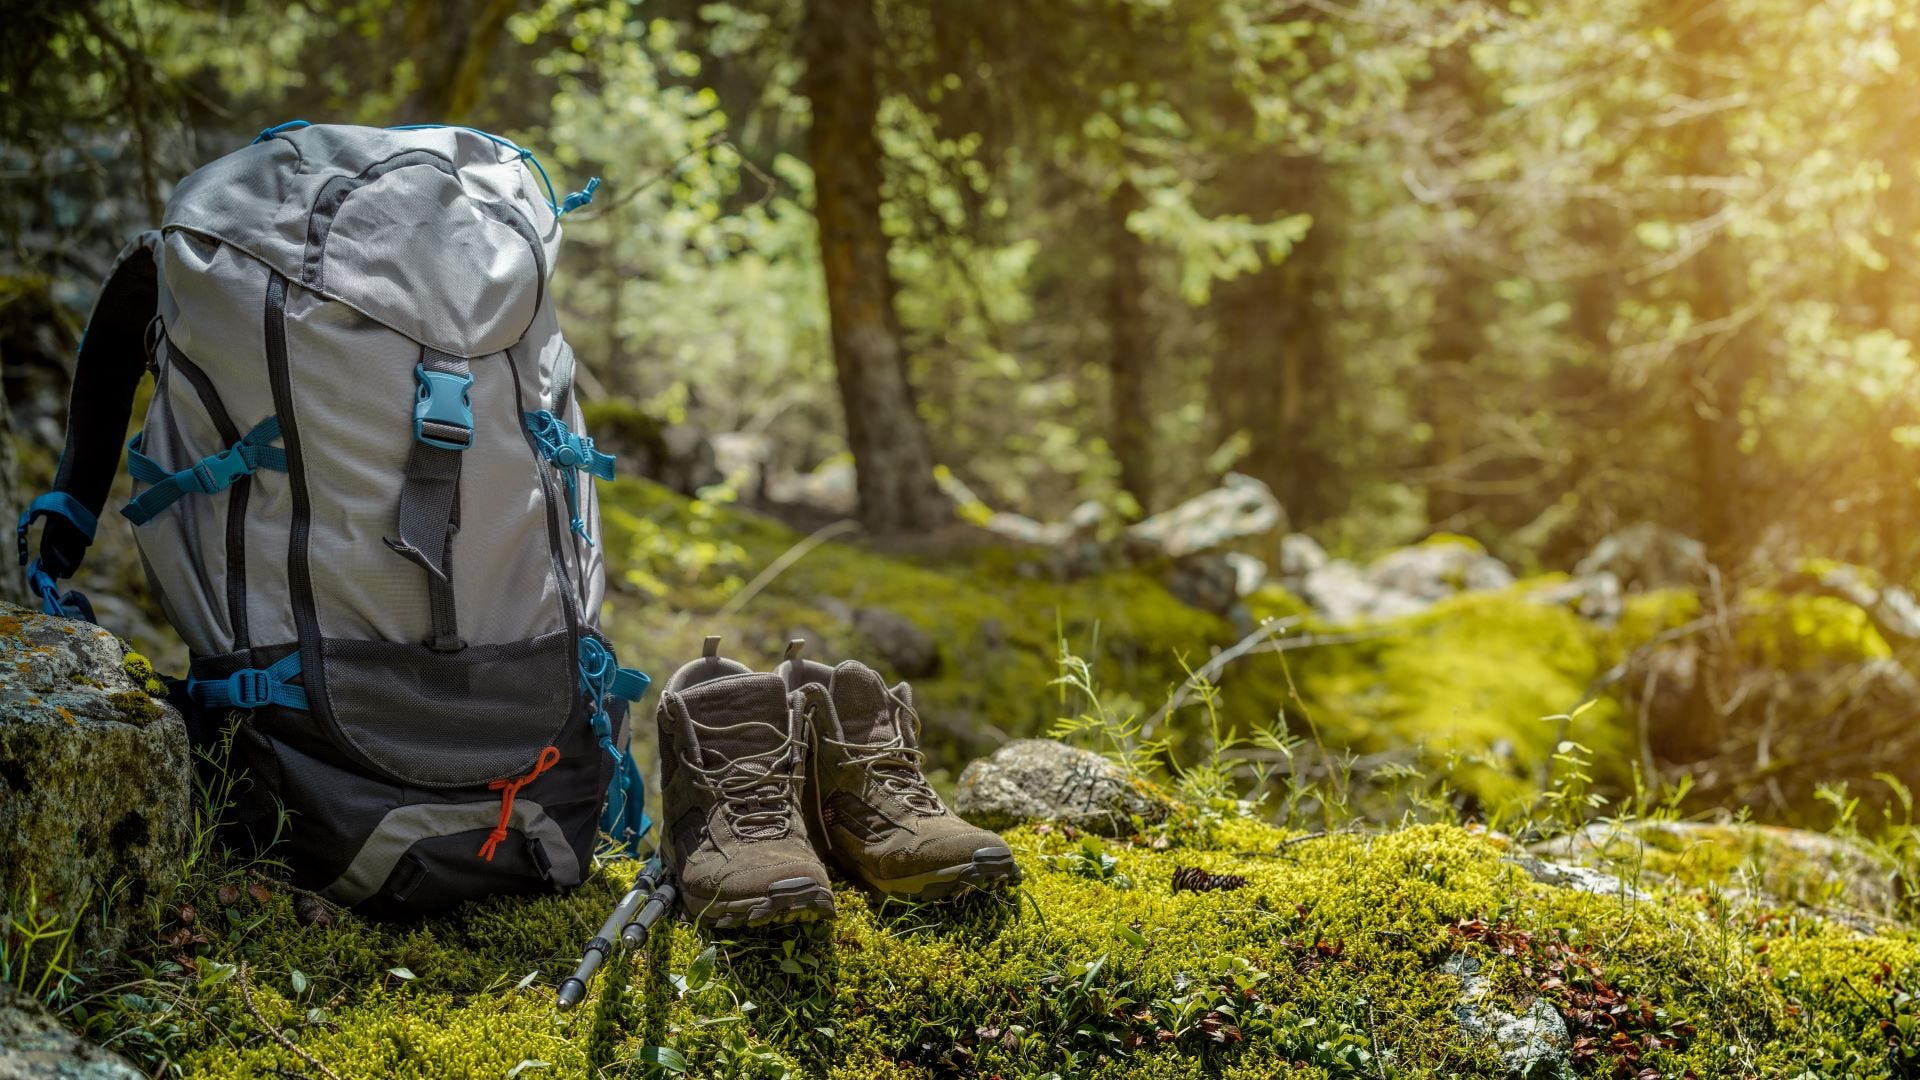 A hiking backpack next to a pair of hiking boots.